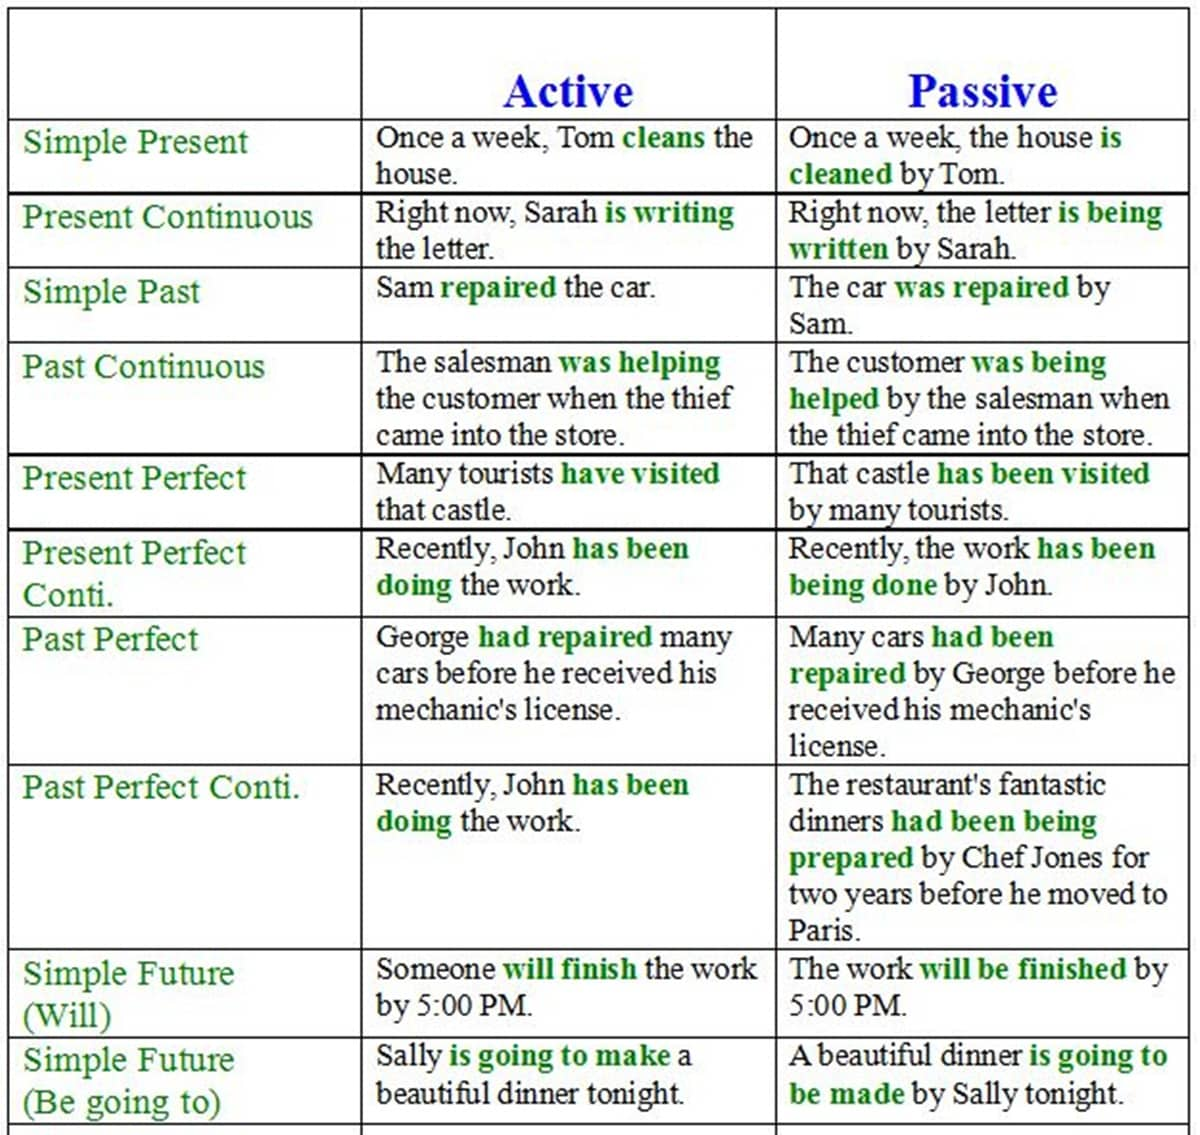 vark learning styles explanation pdf